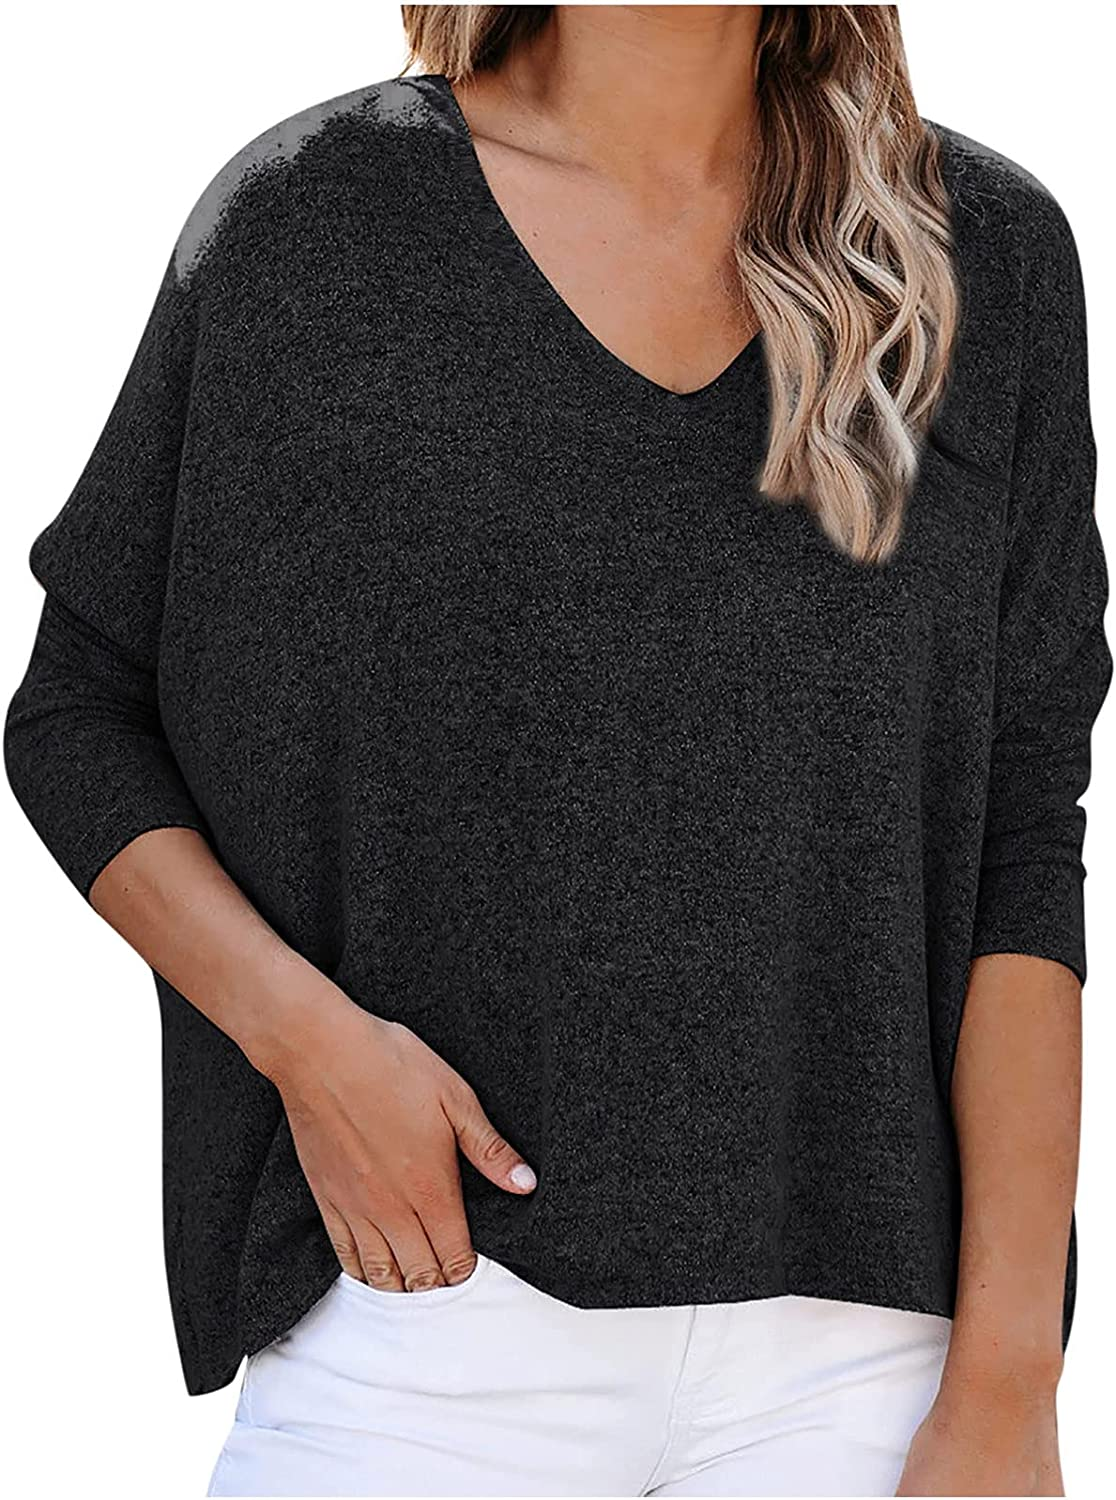 Women Plus Size V Neck Sweaters, Crop Long Batwing Sleeve Loose Tops Vintage Lightweight Elegant Pullover Tops Blouse